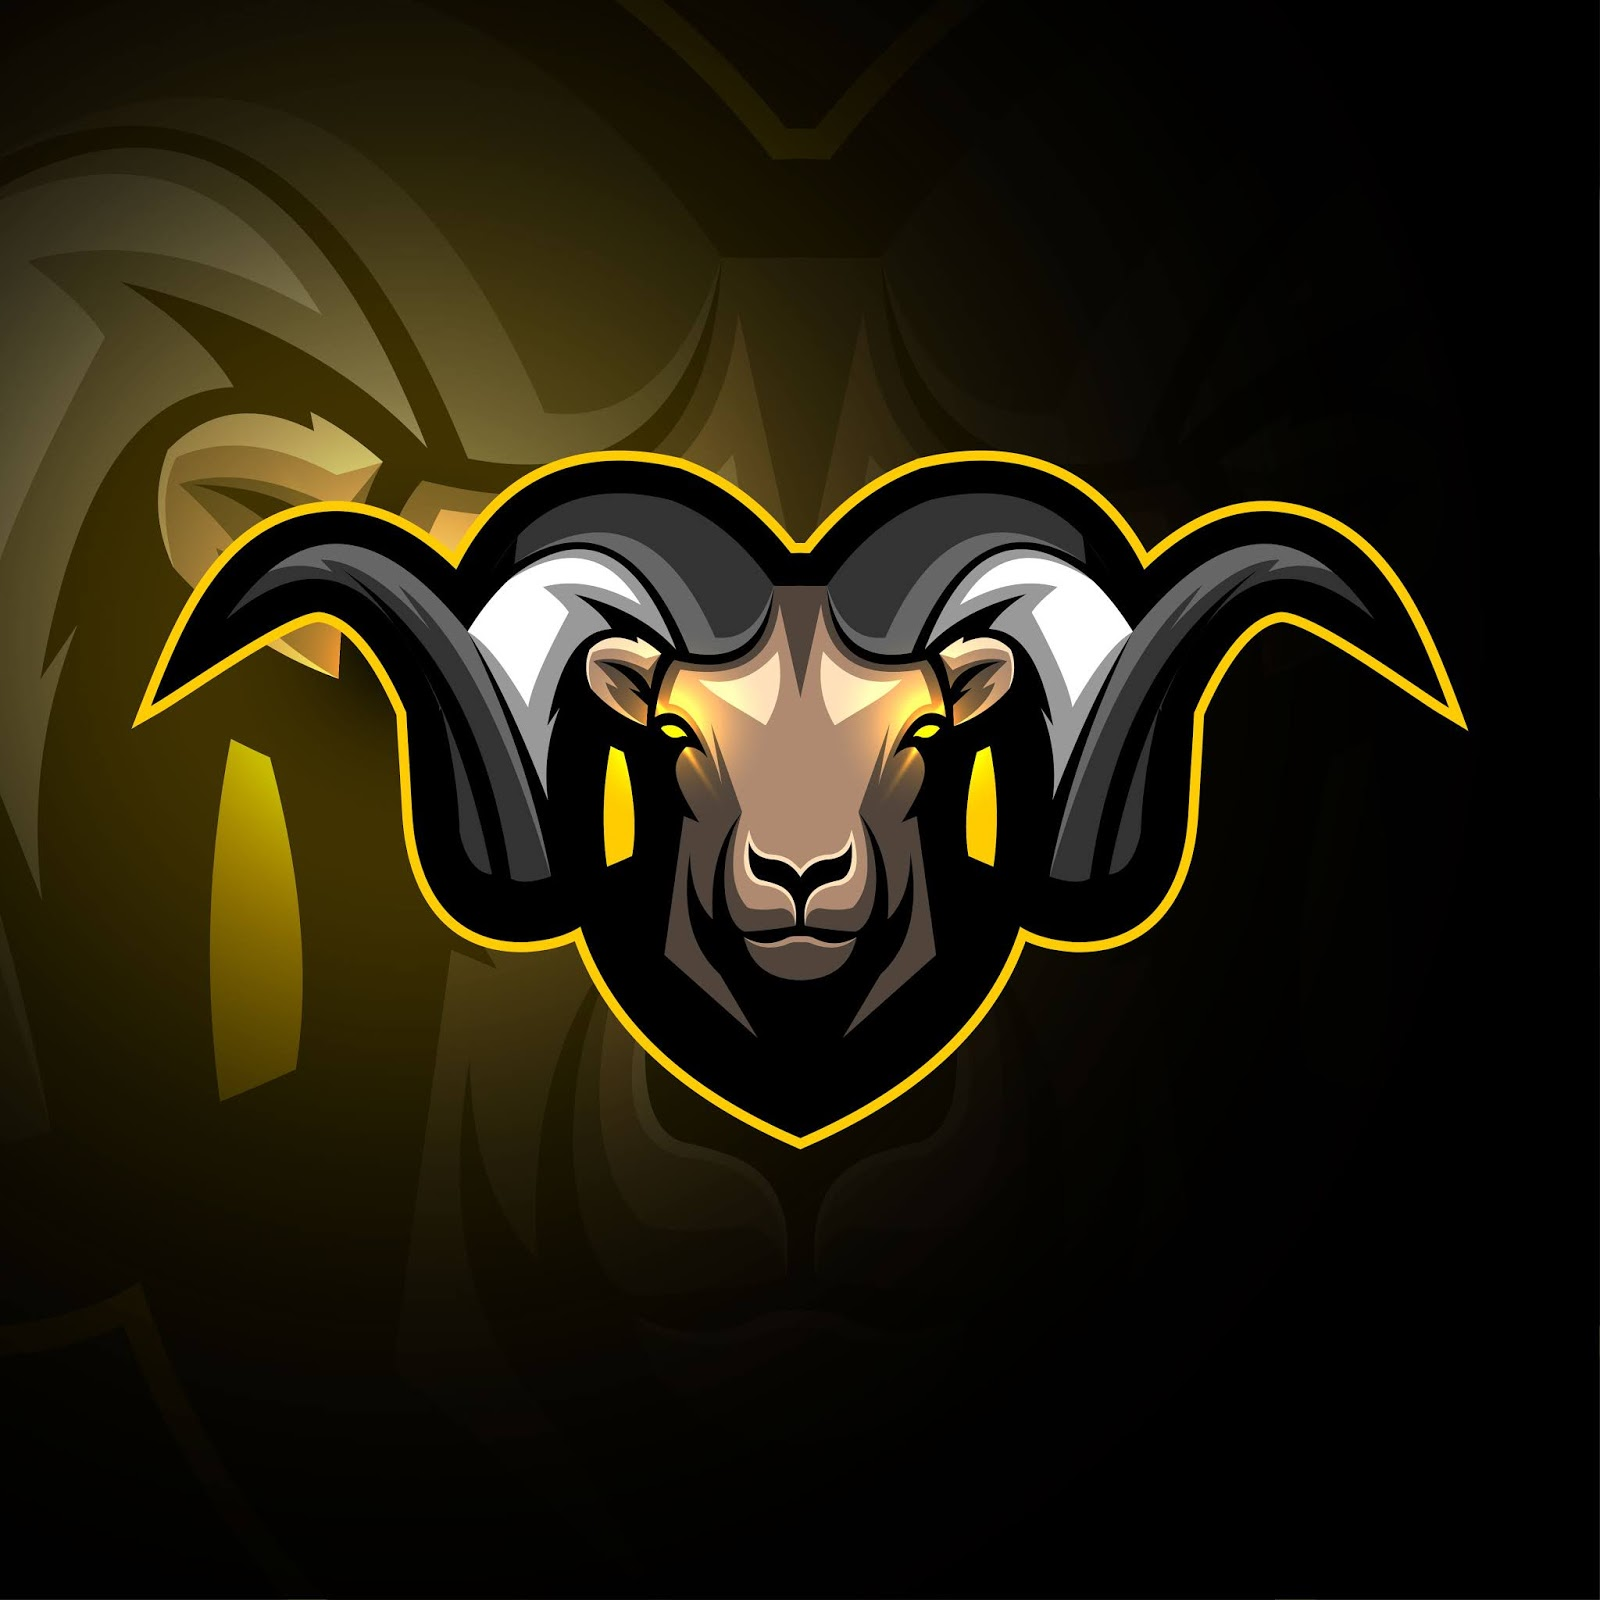 Head Goat Mascot Logo E Sport Design Free Download Vector CDR, AI, EPS and PNG Formats